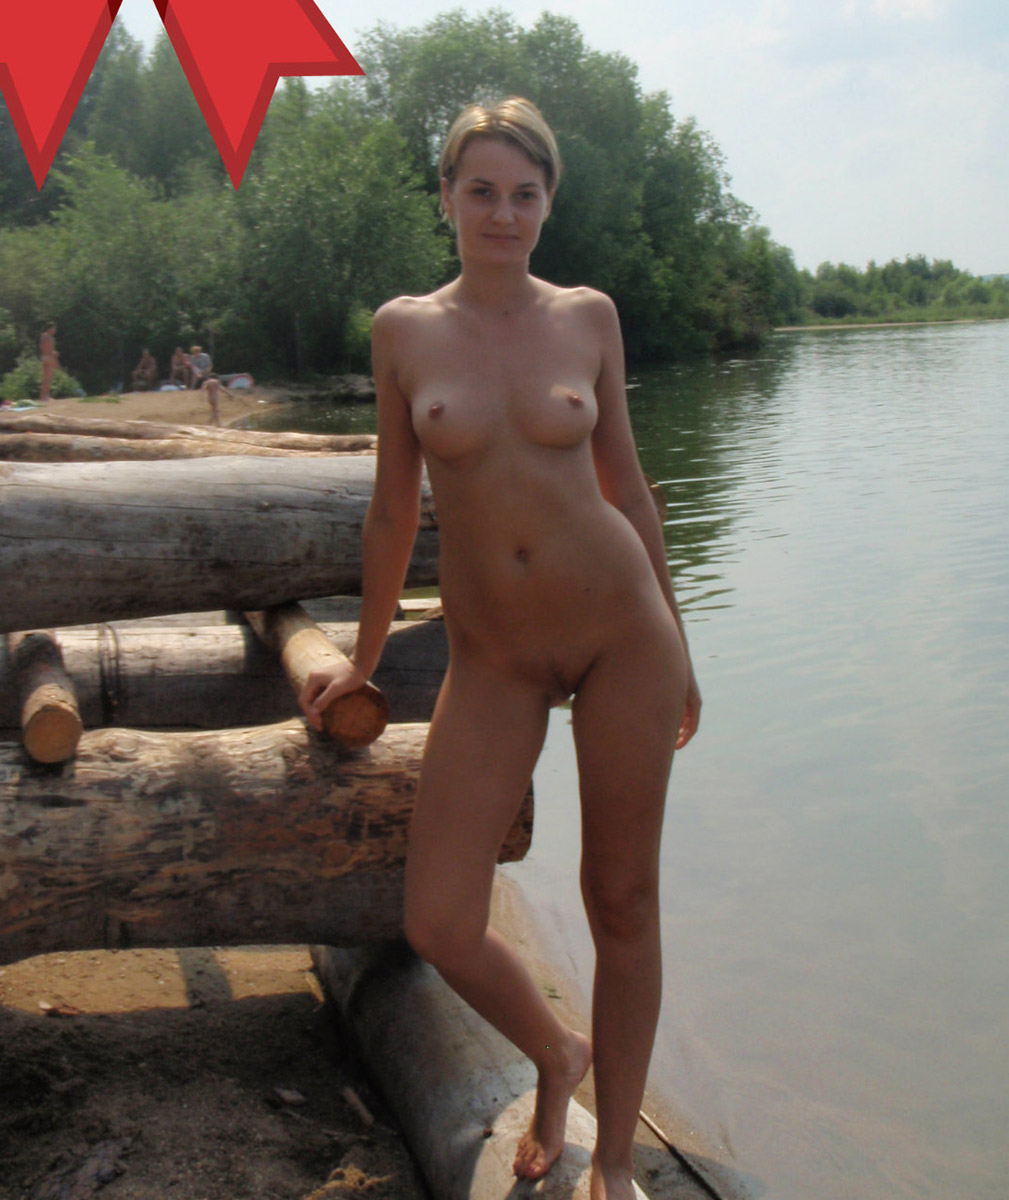 girls on beach Hot shaved pussy Milf picture naked